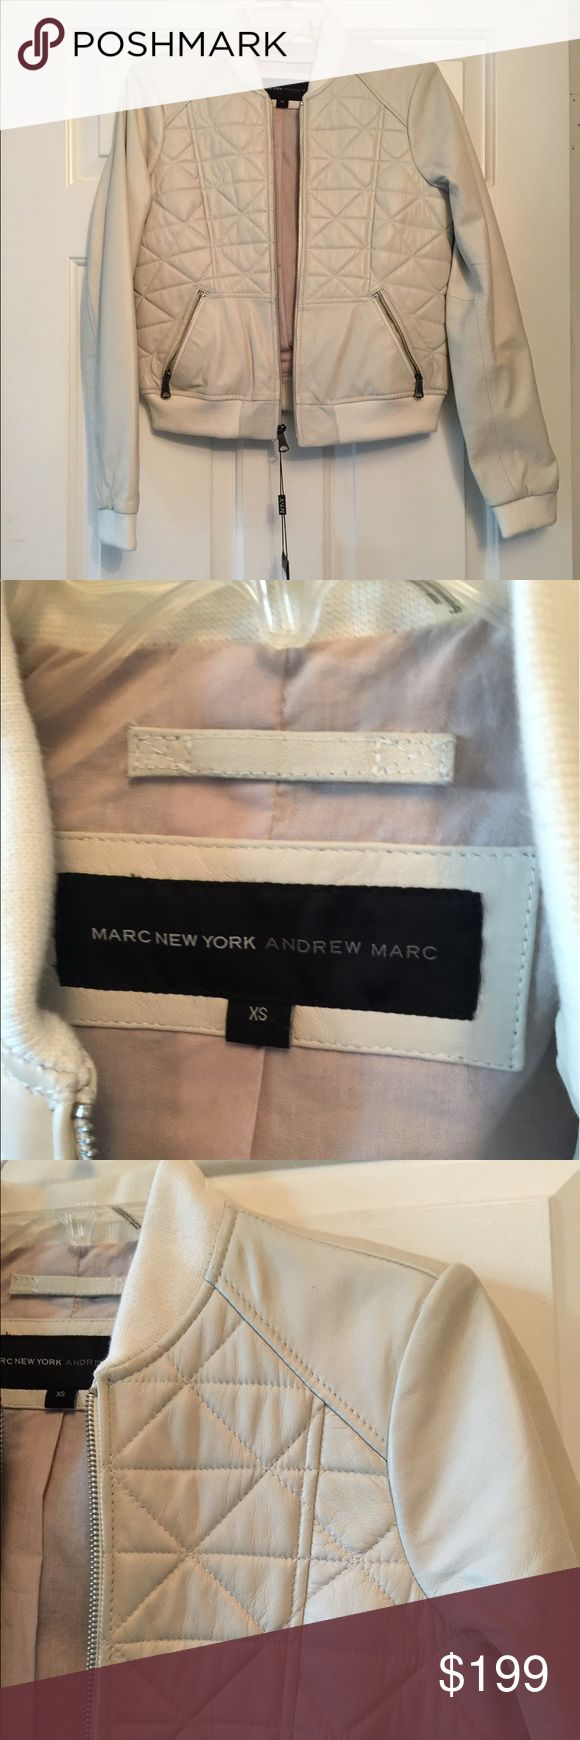 NWT Leather Bomber Jacket Fully lined.  Very high quality jacket.  Please see price tag. mark new york andrew mark Jackets & Coats